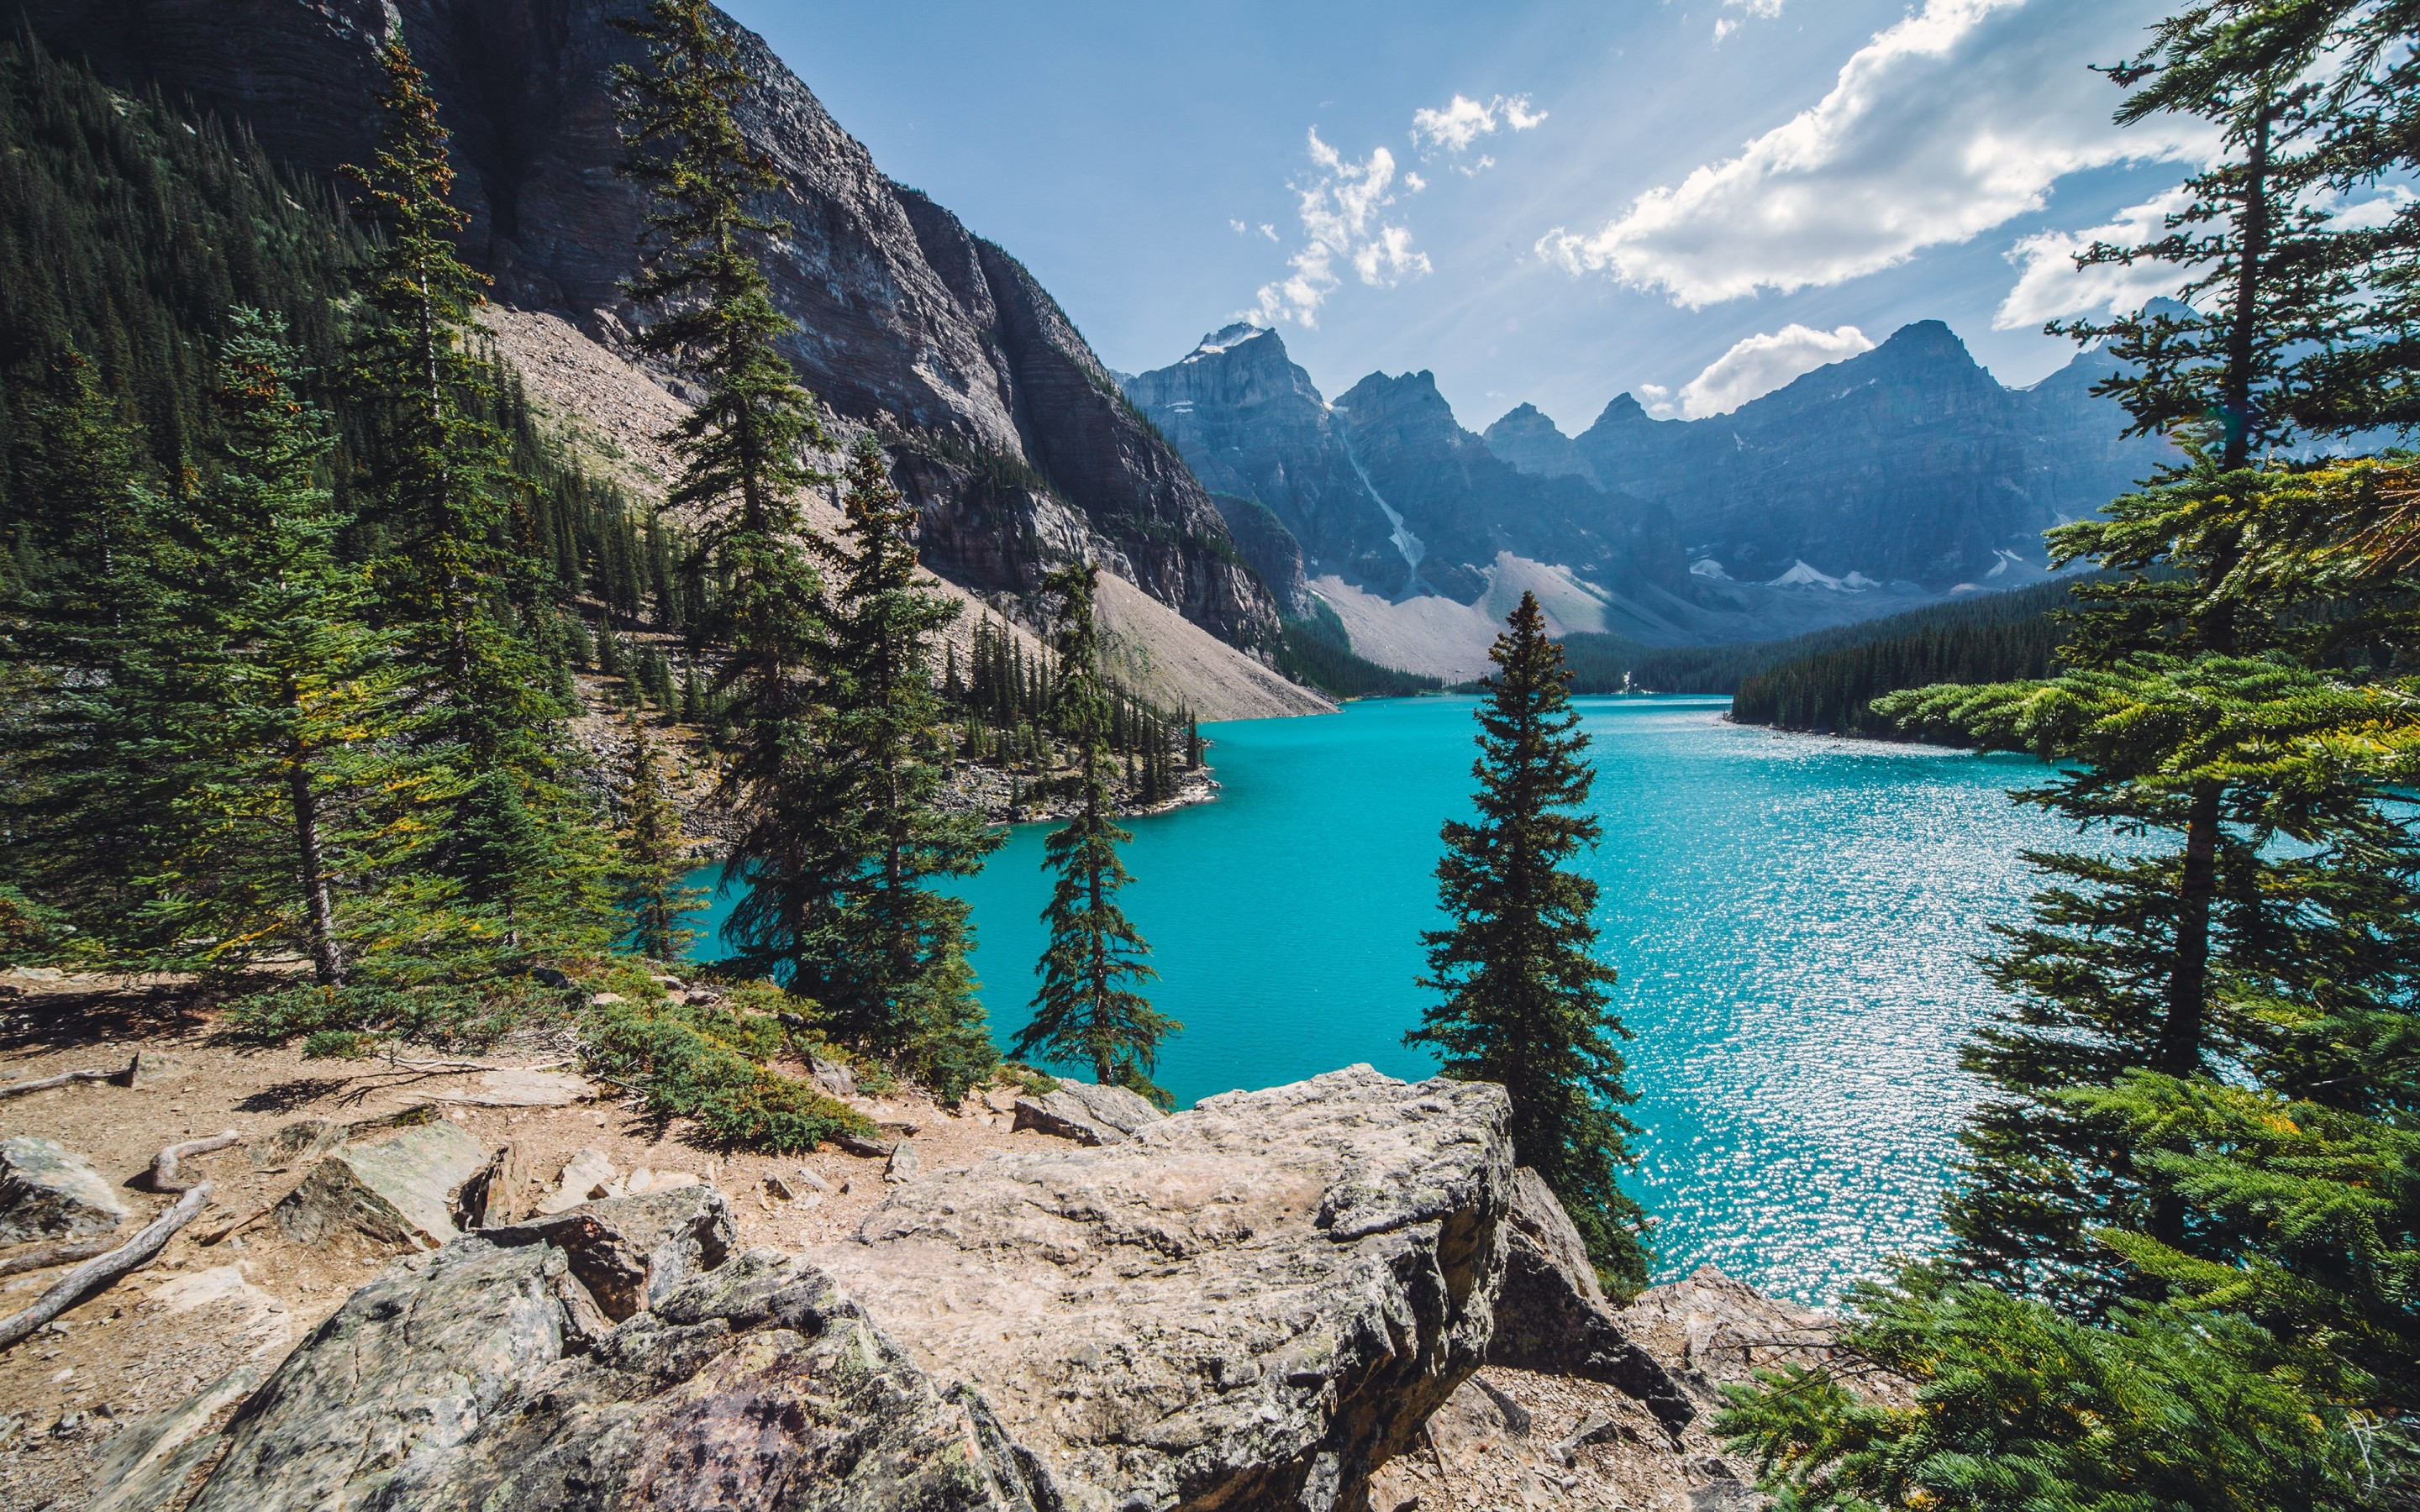 Sunny day over Moraine Lake Wallpaper for Desktop 2880x1800